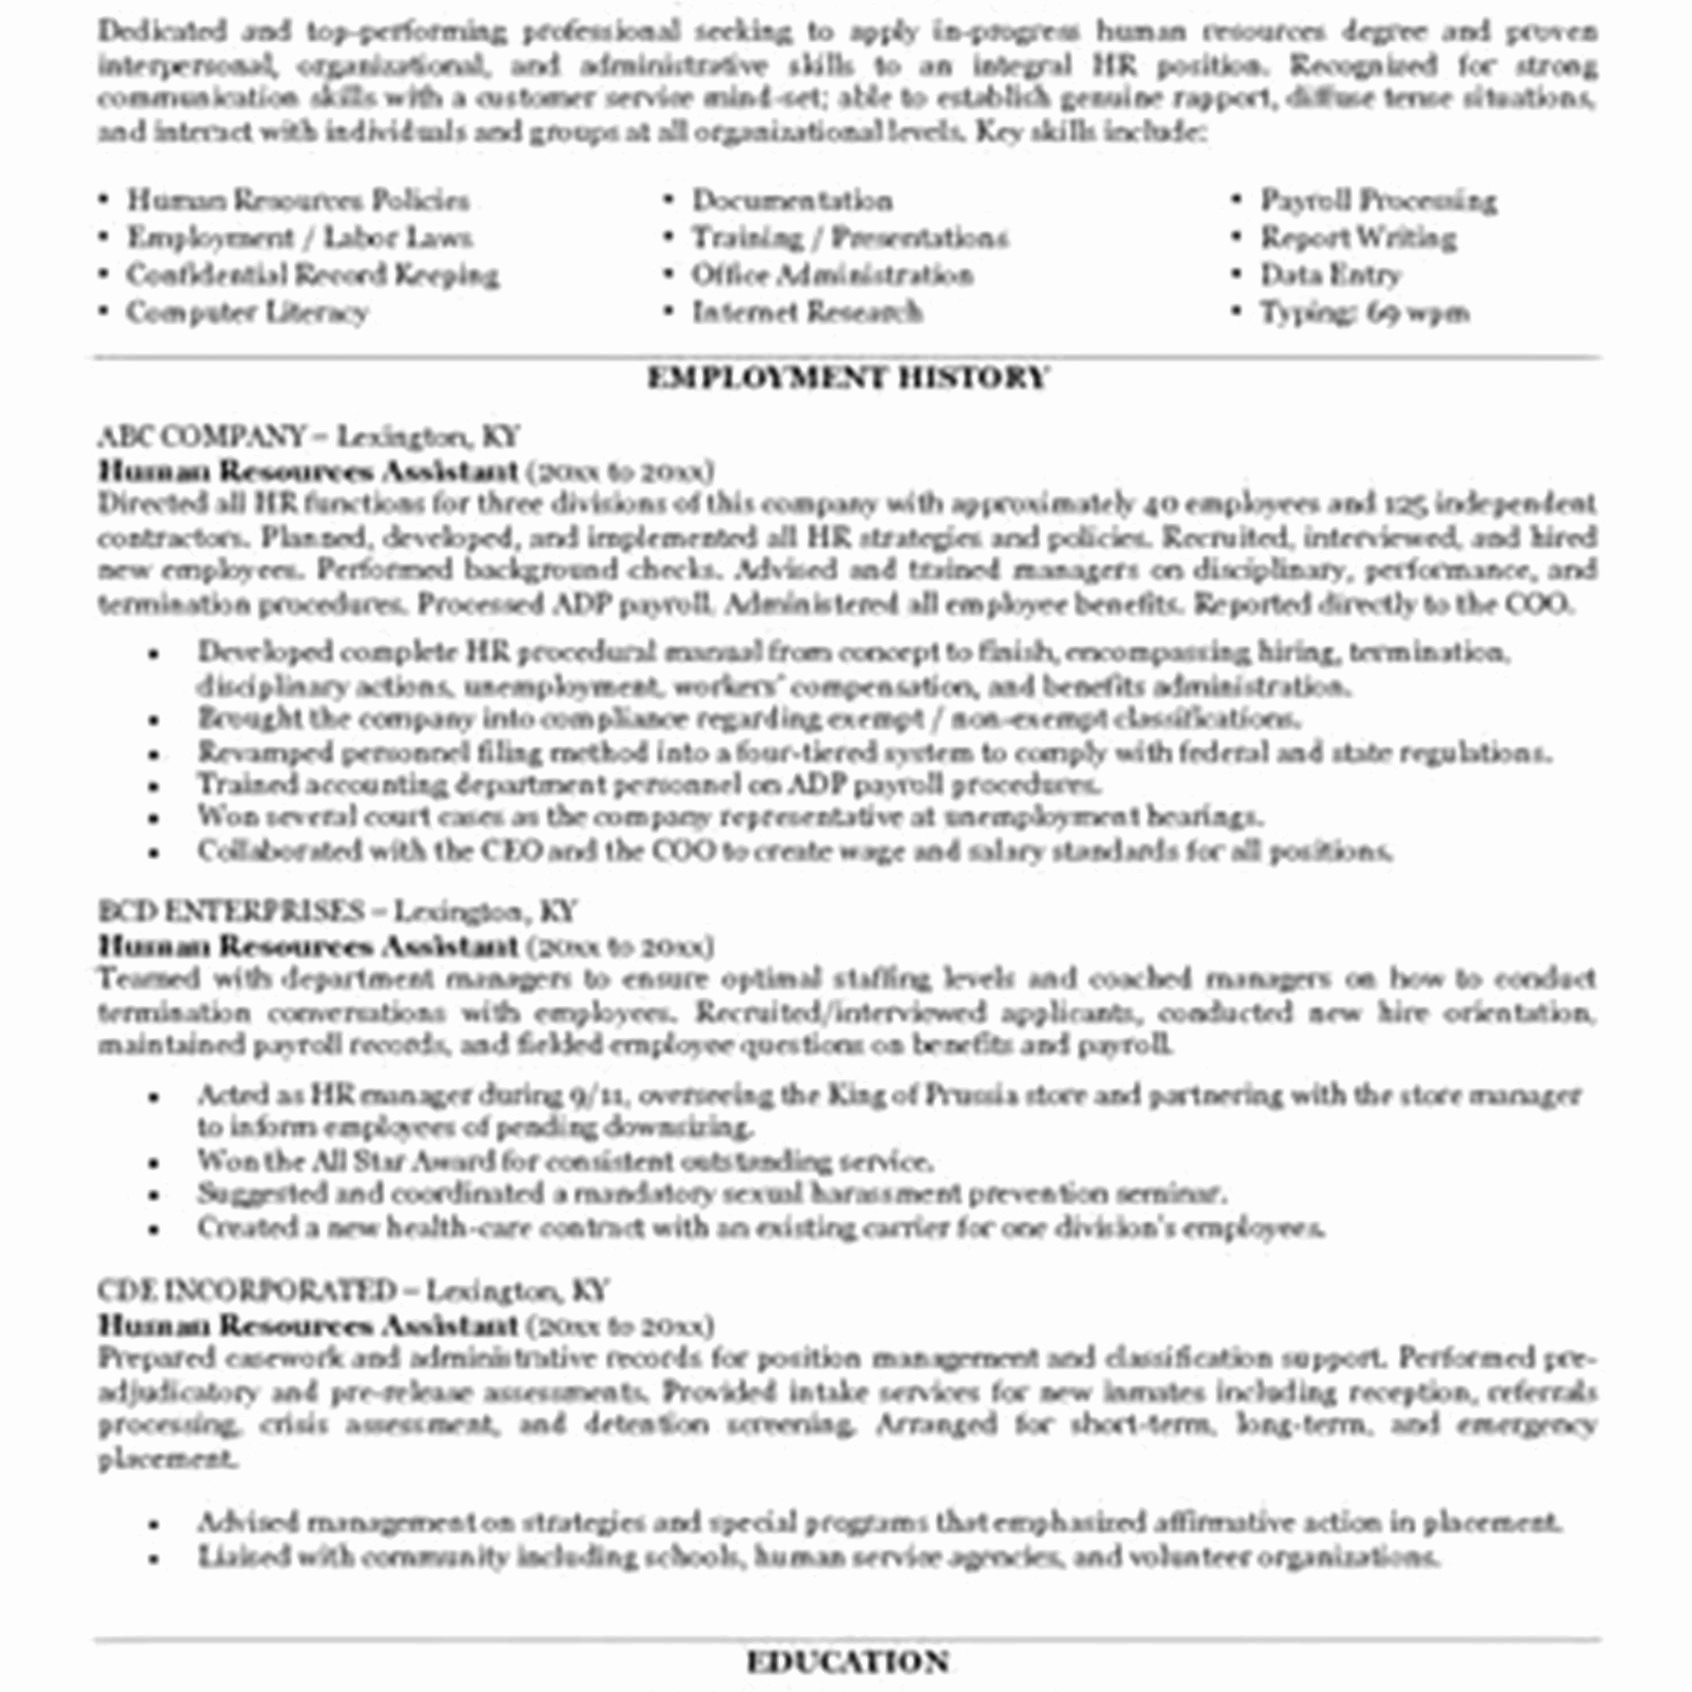 Human Resources Resume Entry Level Humanourcesume Sample Generalist Objective human resources resume|wikiresume.com